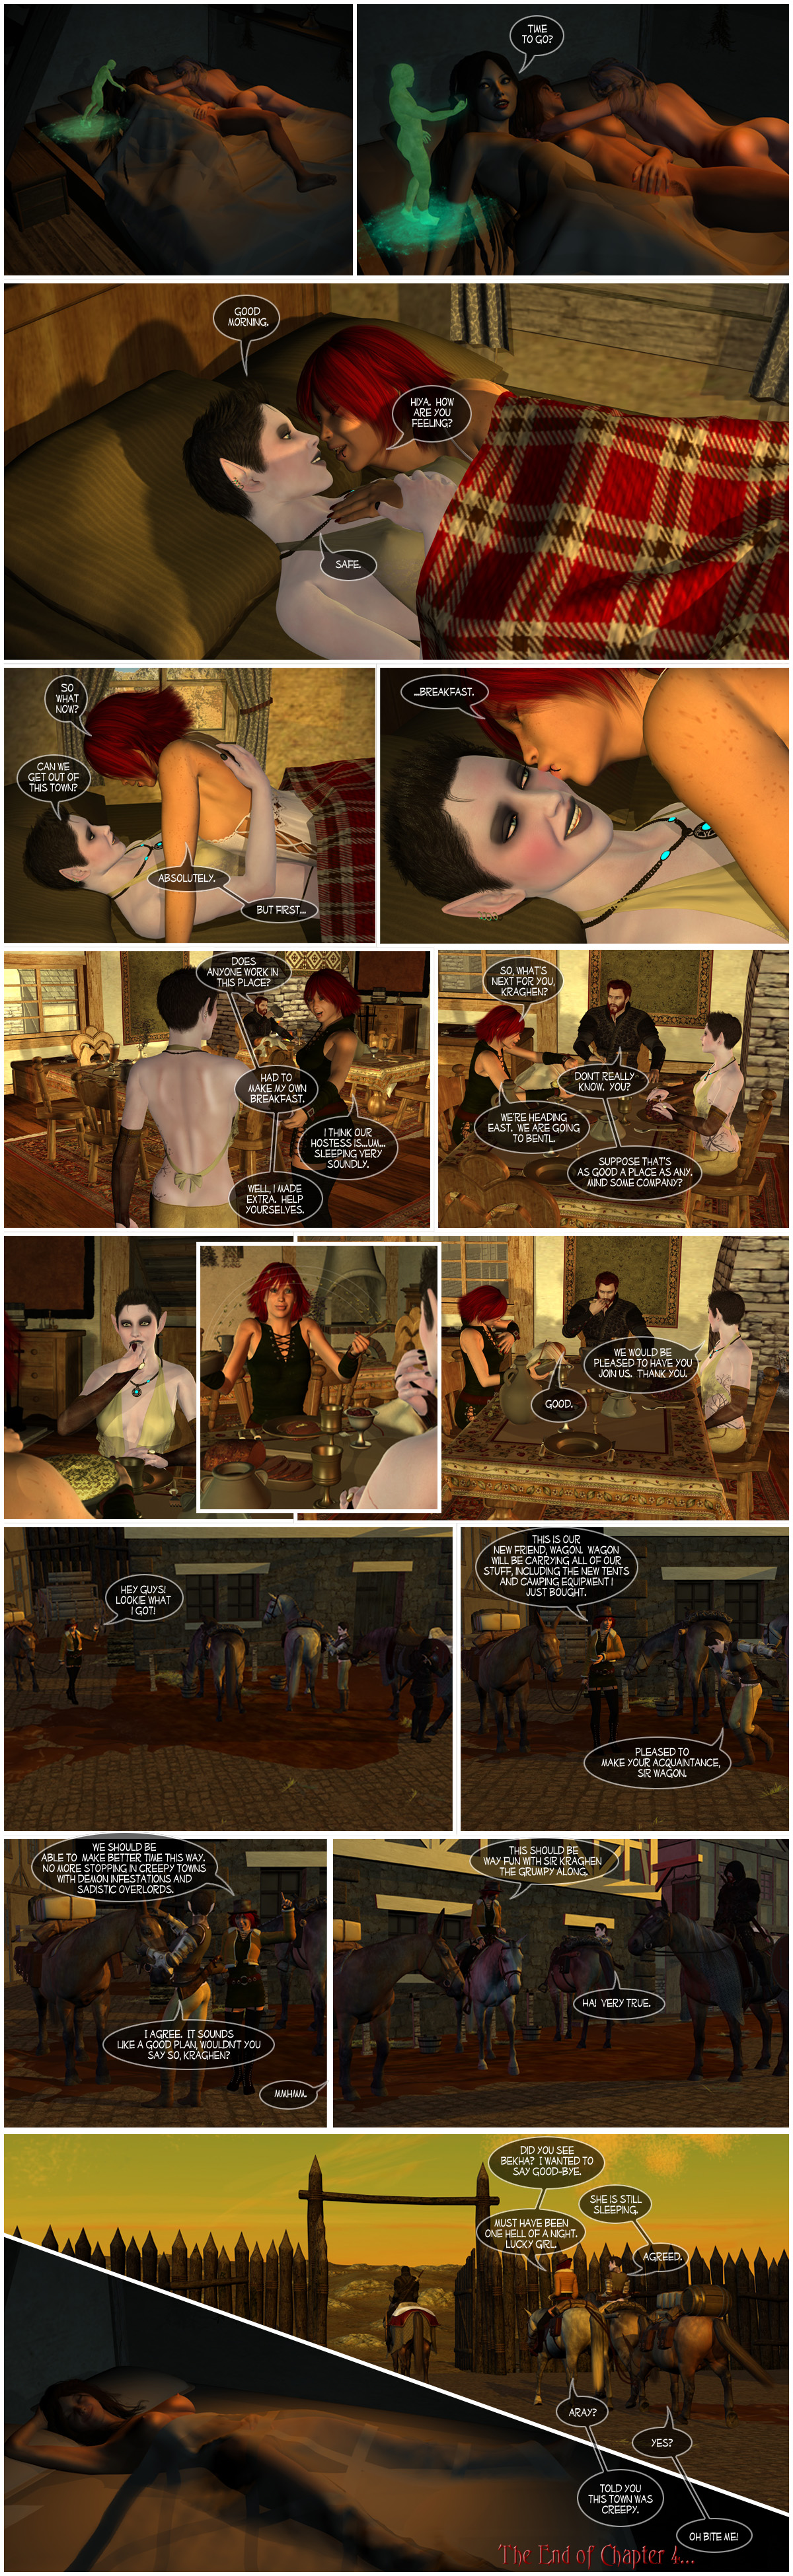 Book 1, Chapter 4, Page 22